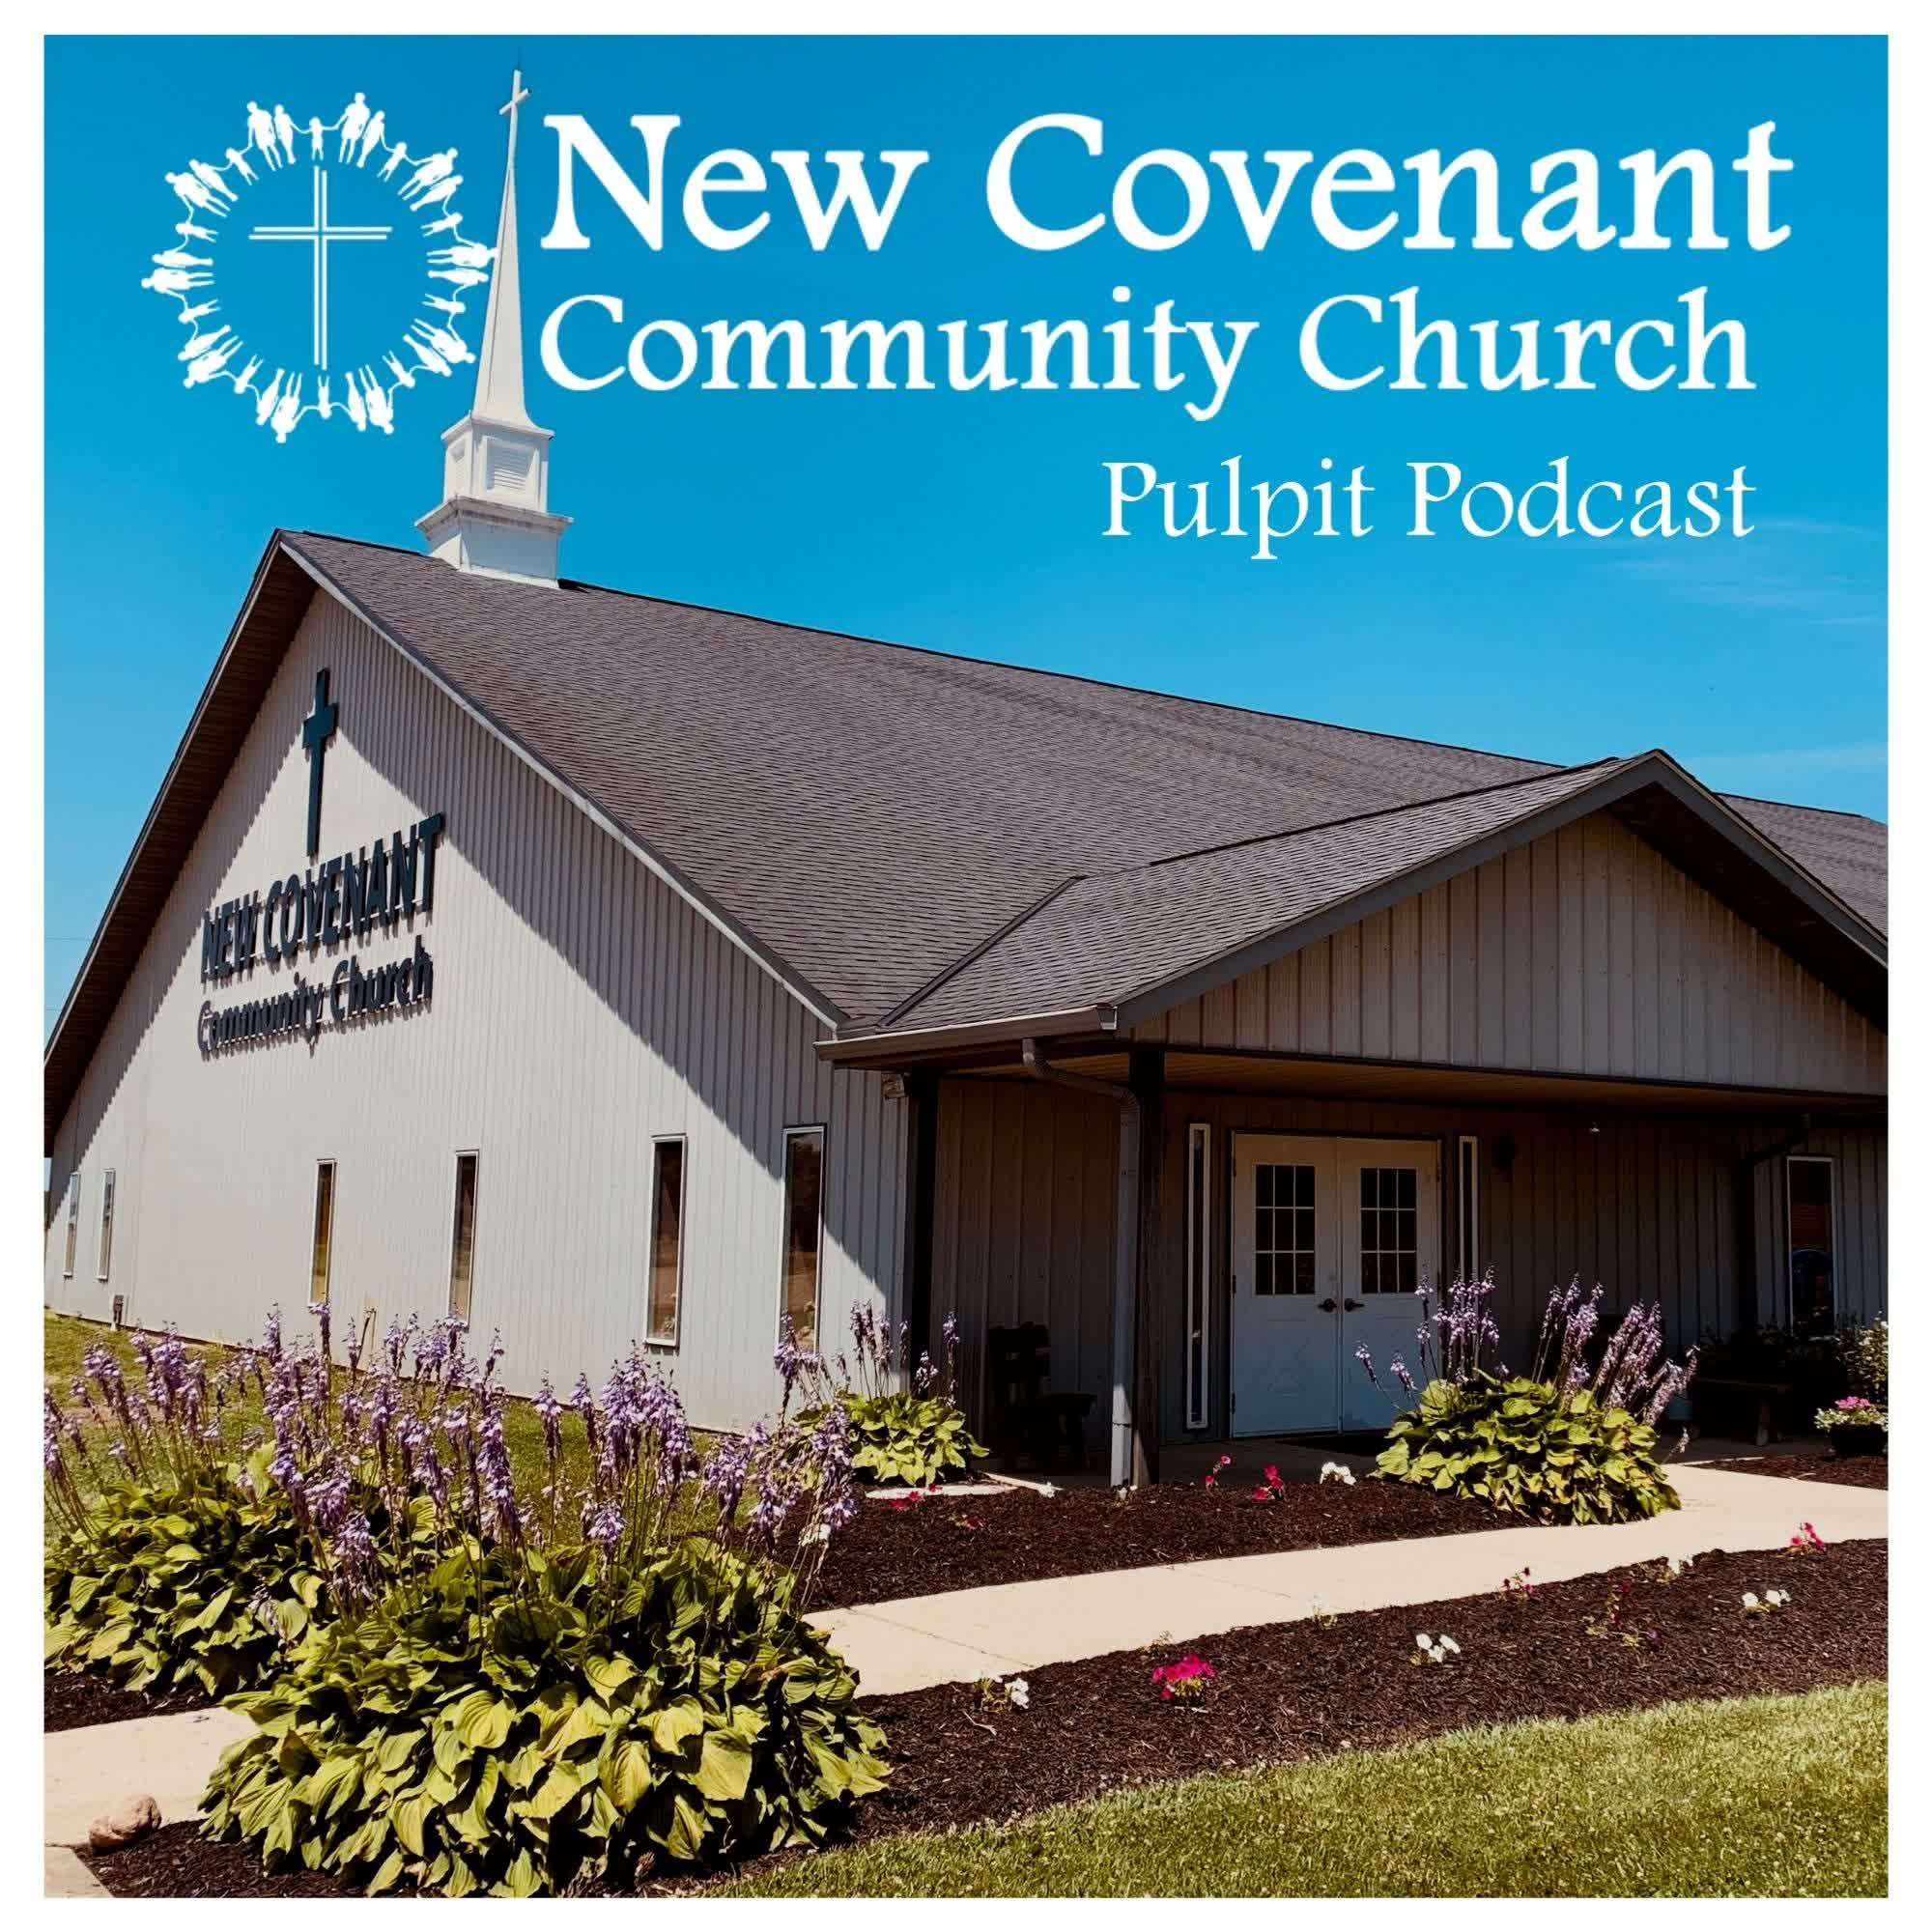 New Covenant Community Church: Pulpit Podcast